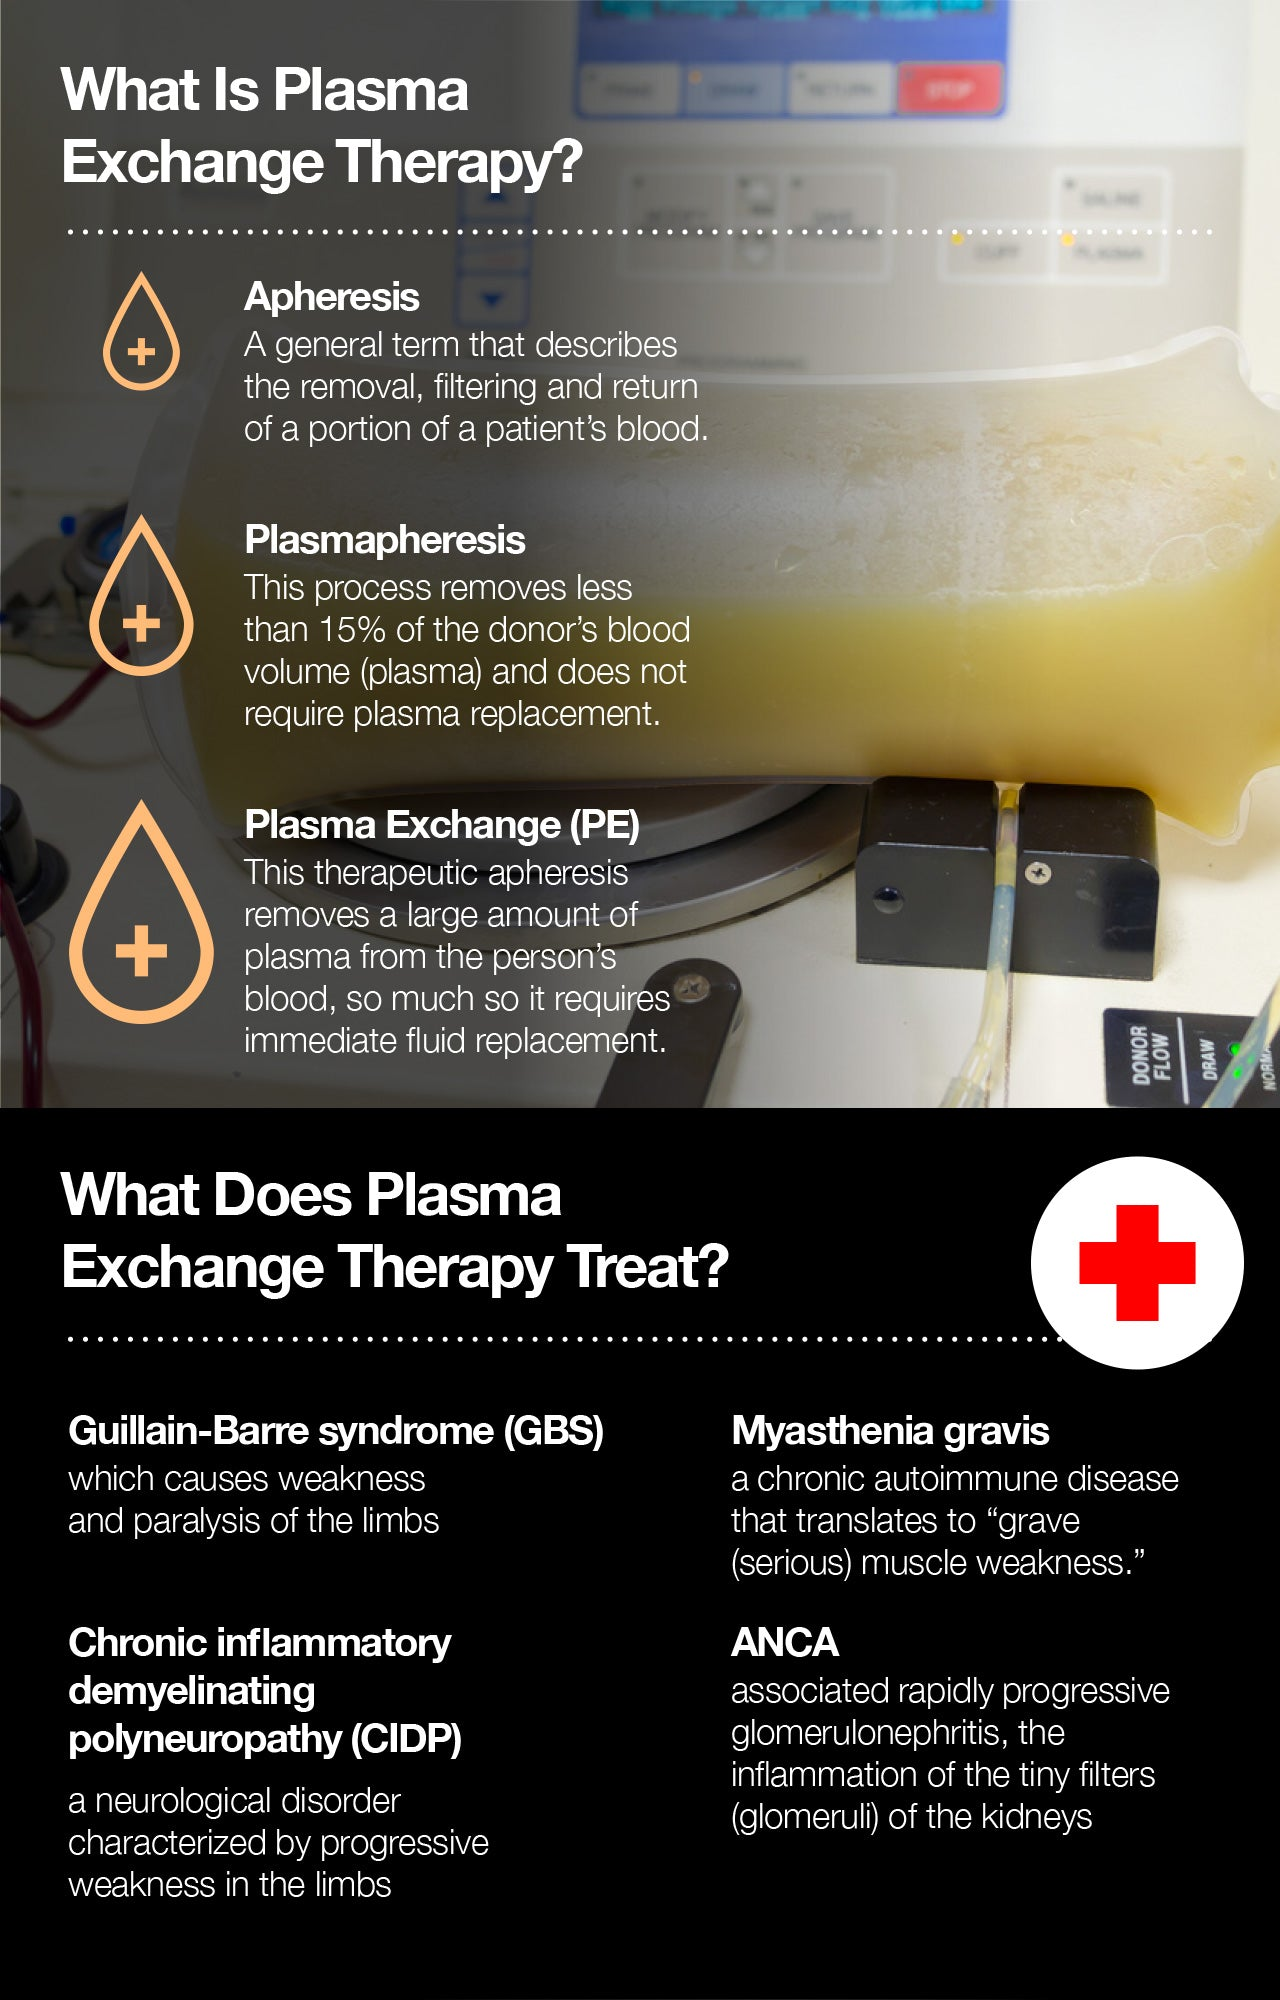 What is plasma exchange therapy?